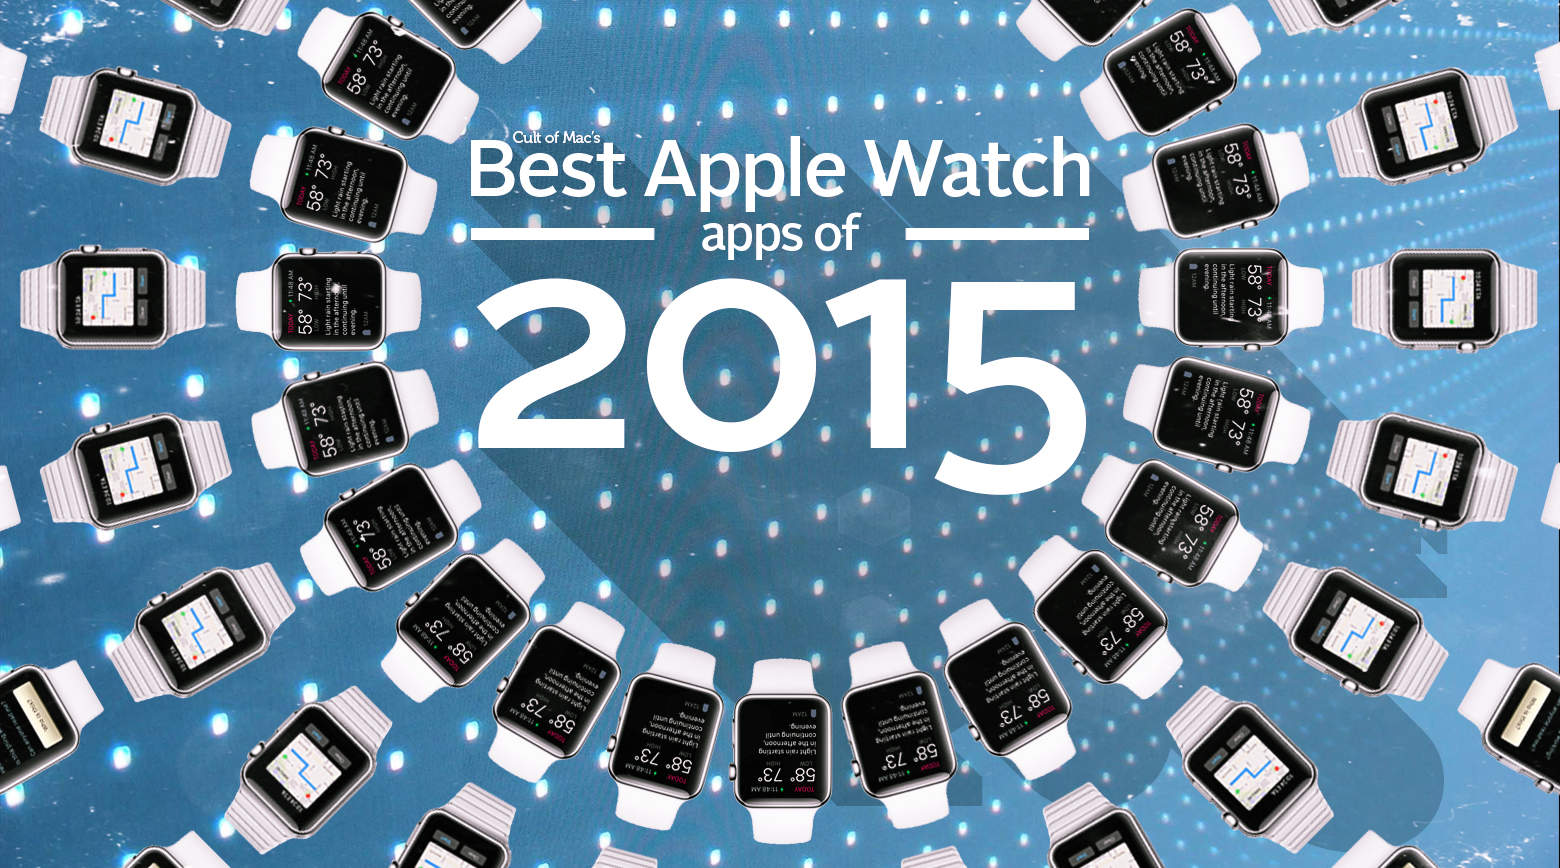 Ready to set your wrist on fire? Download these hot, hot, hot Apple Watch apps now.